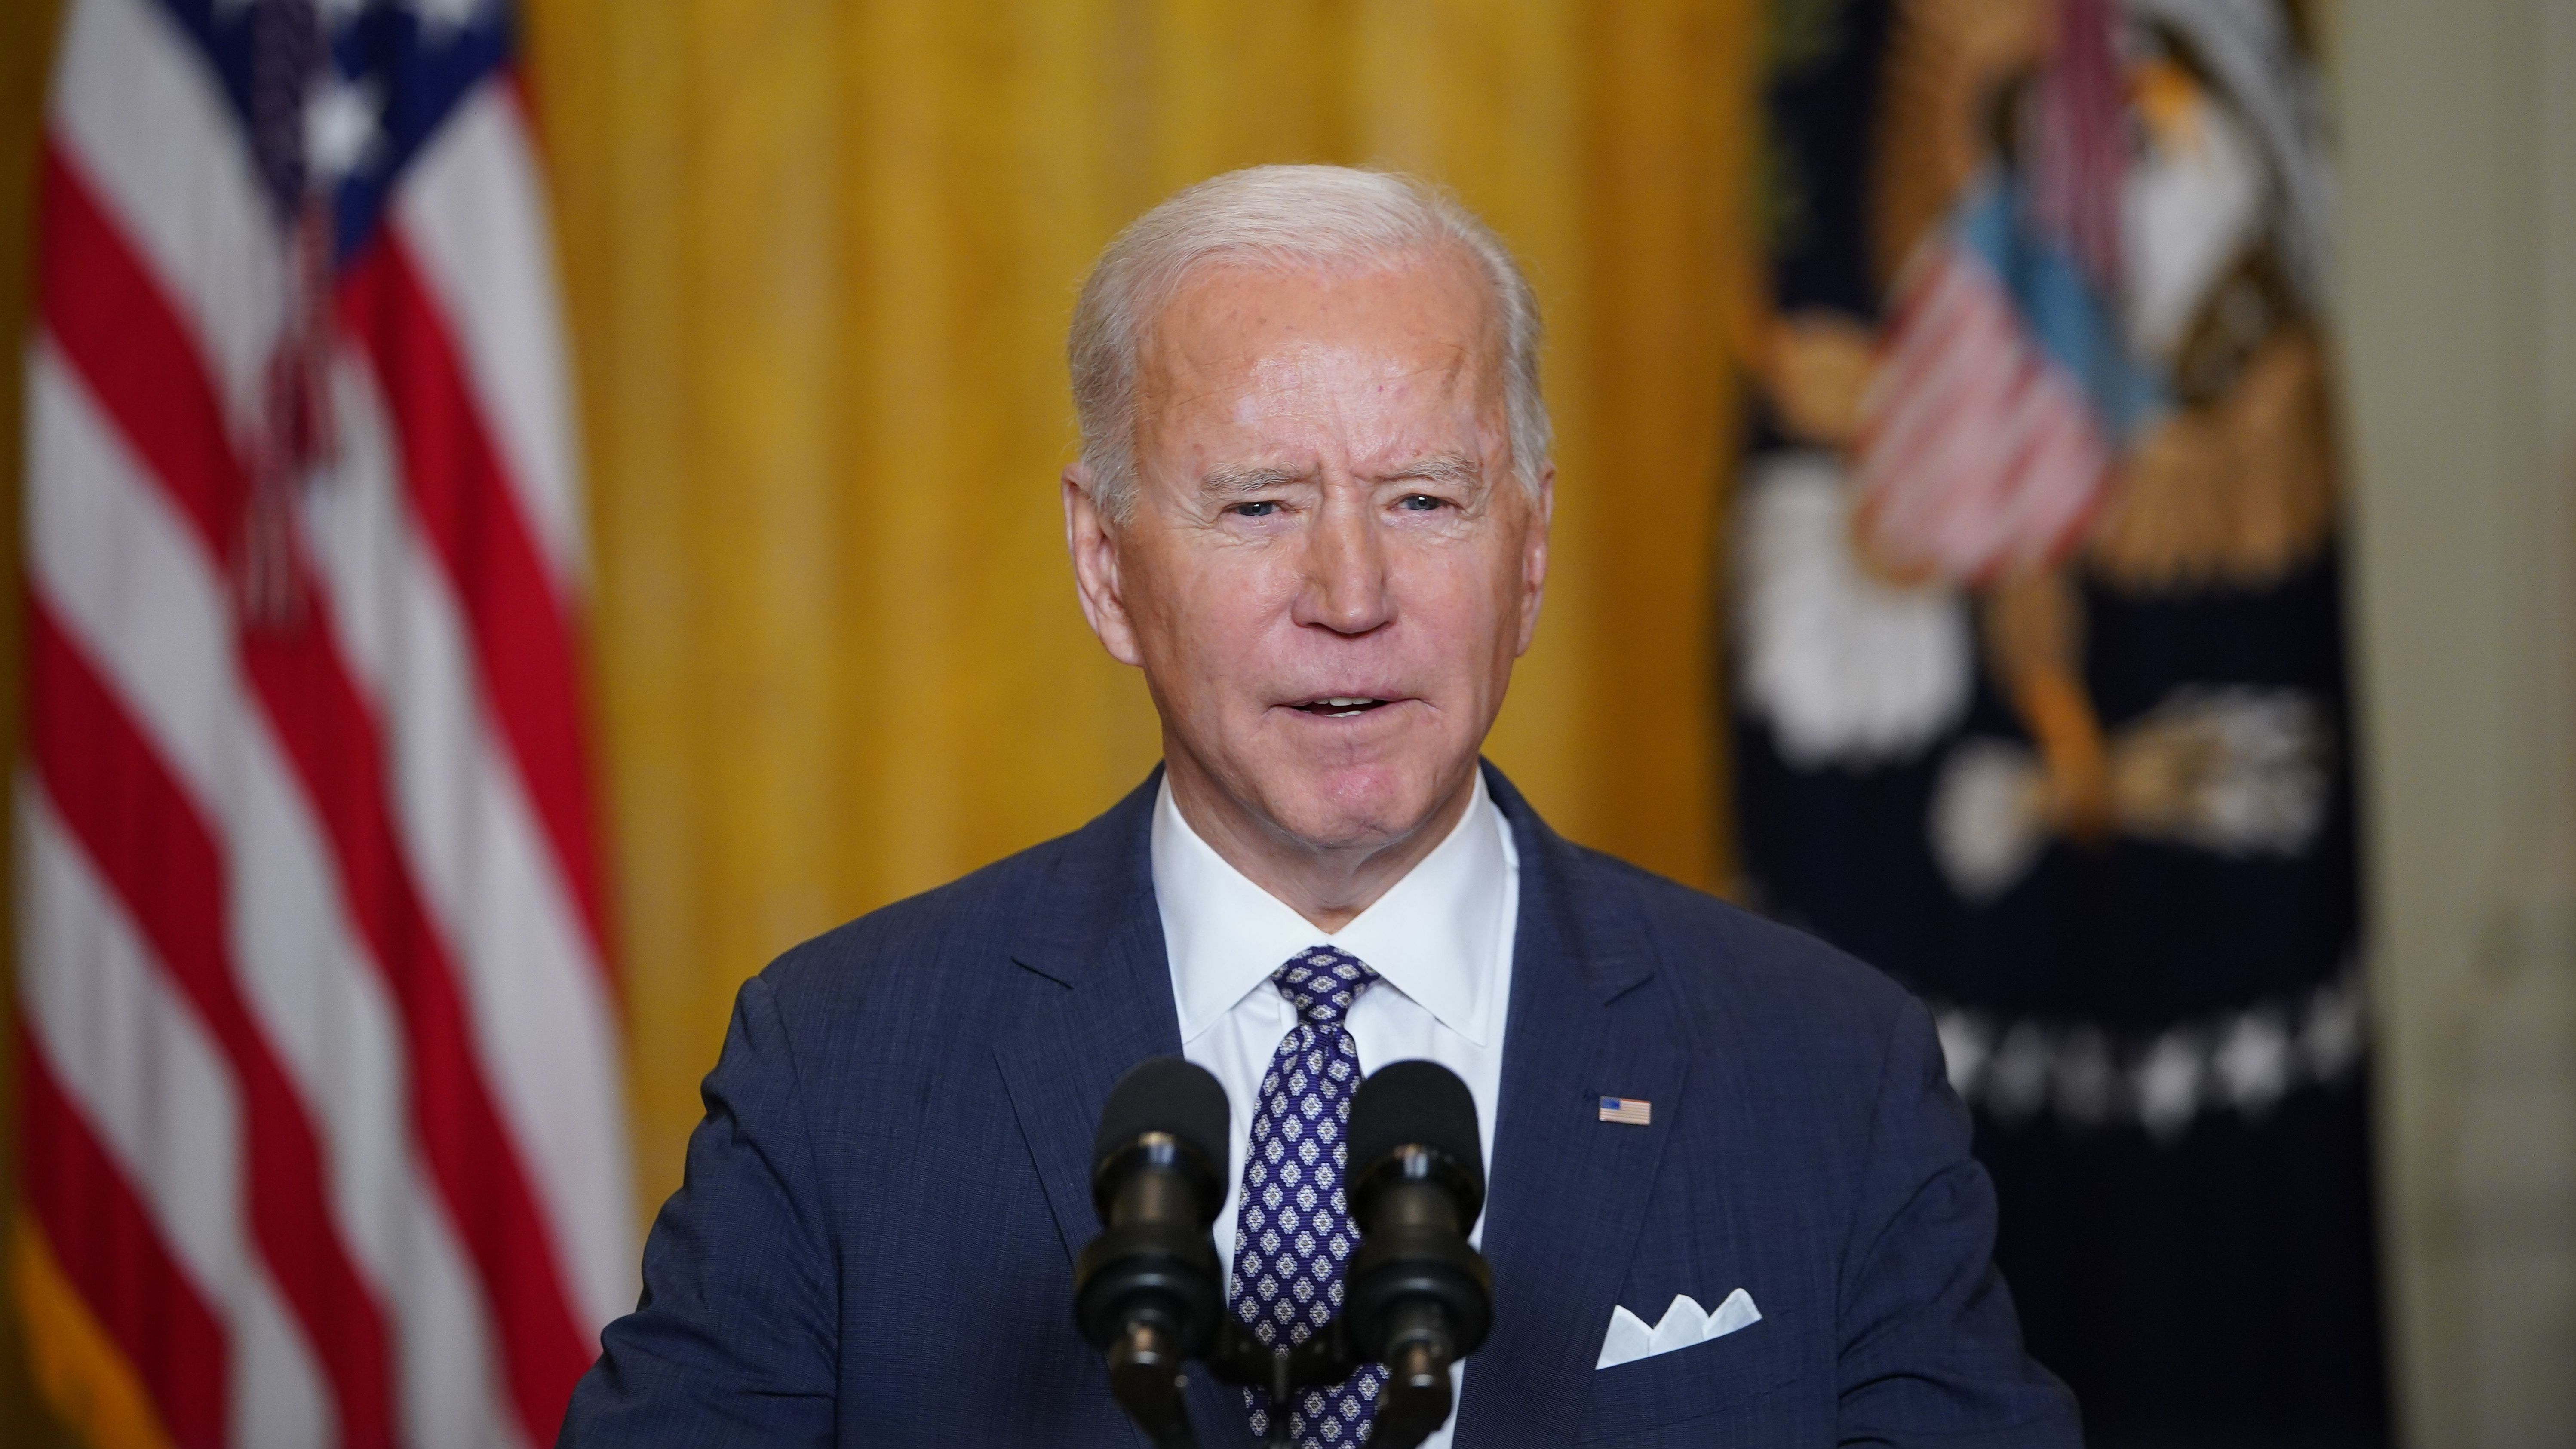 President Biden speaks from the East Room of the White House to virtually address the Munich Security Conference in Germany on Friday.